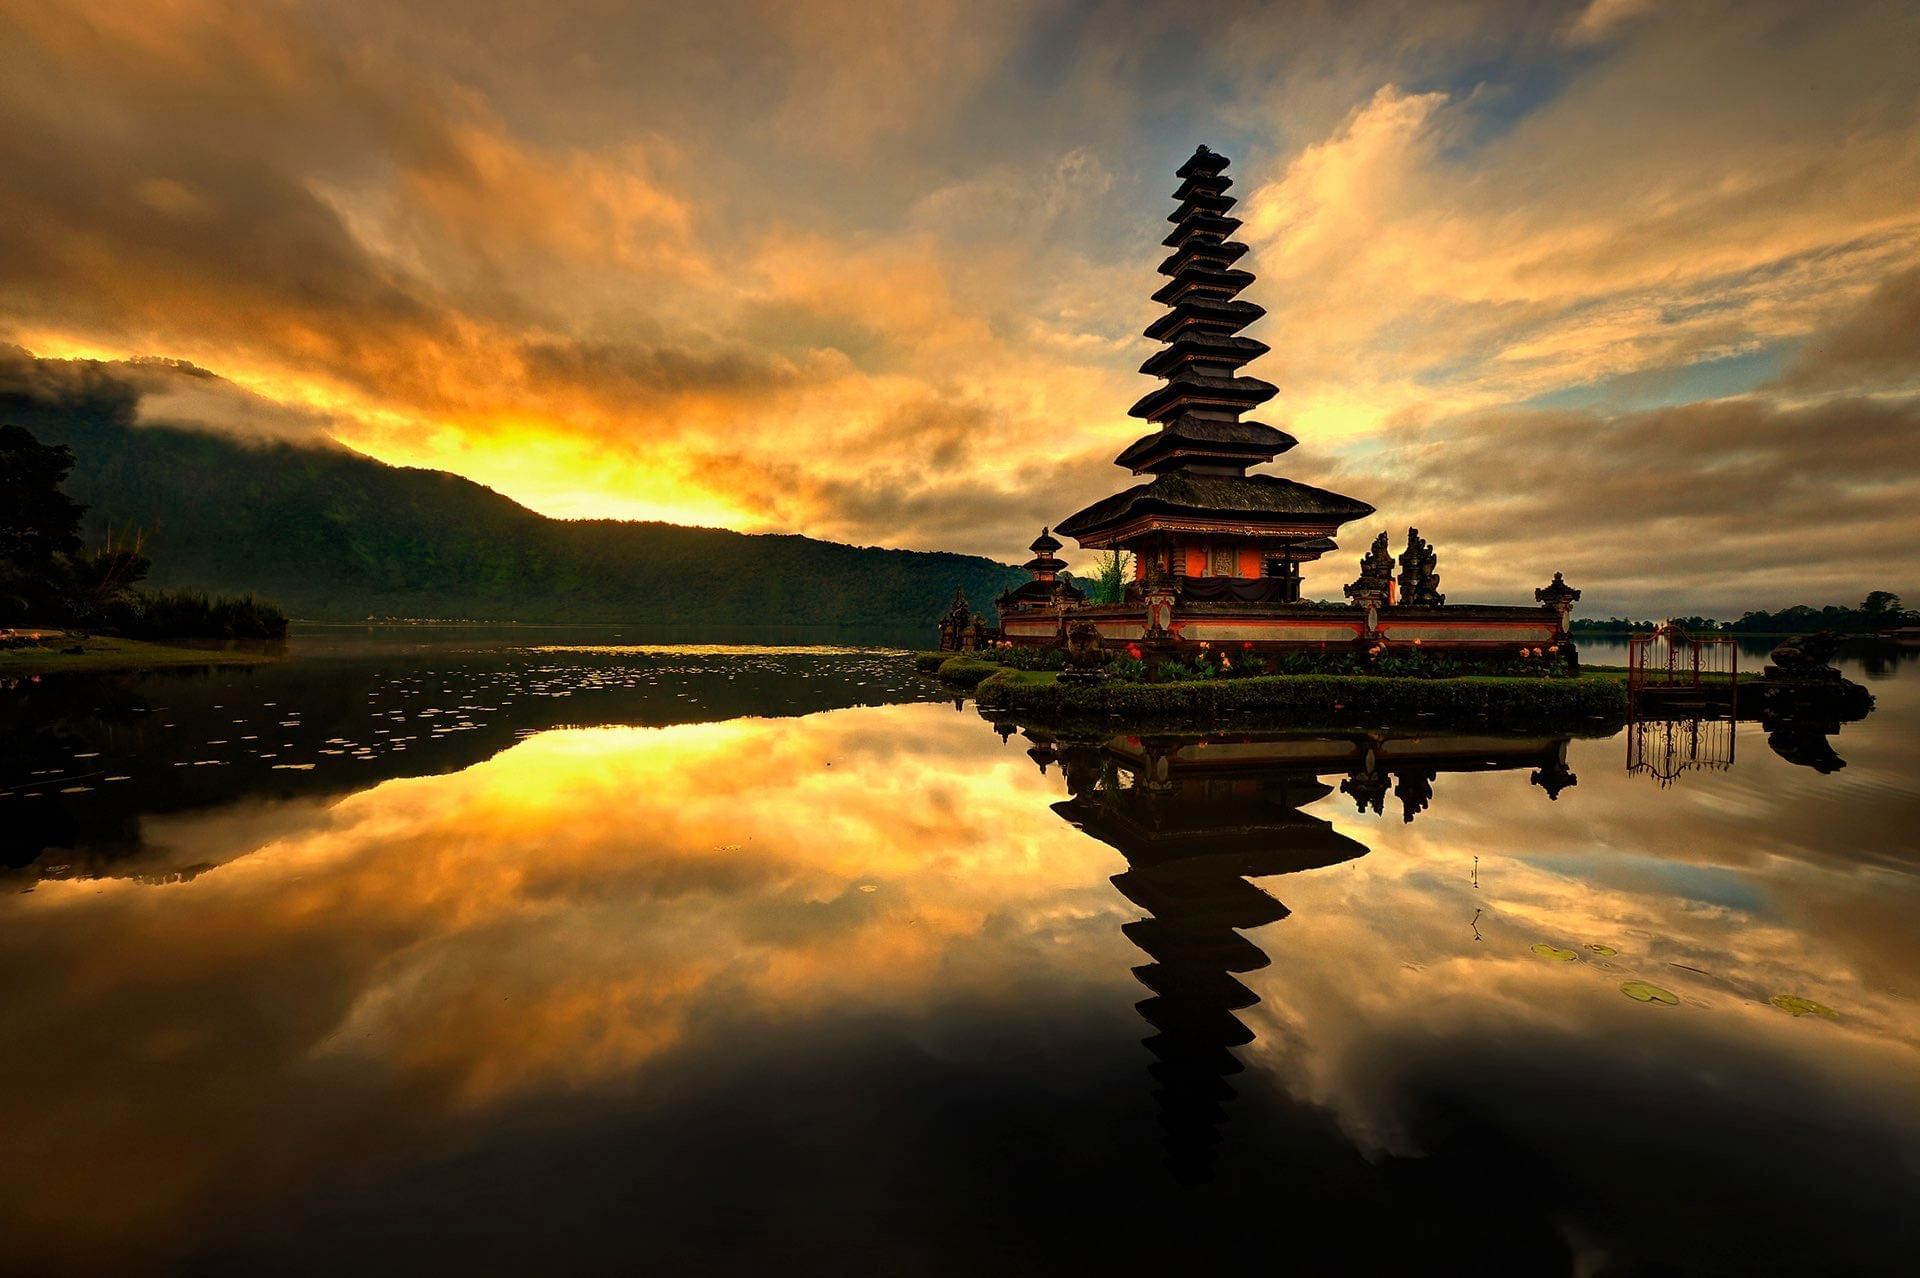 Bali Temple by evening